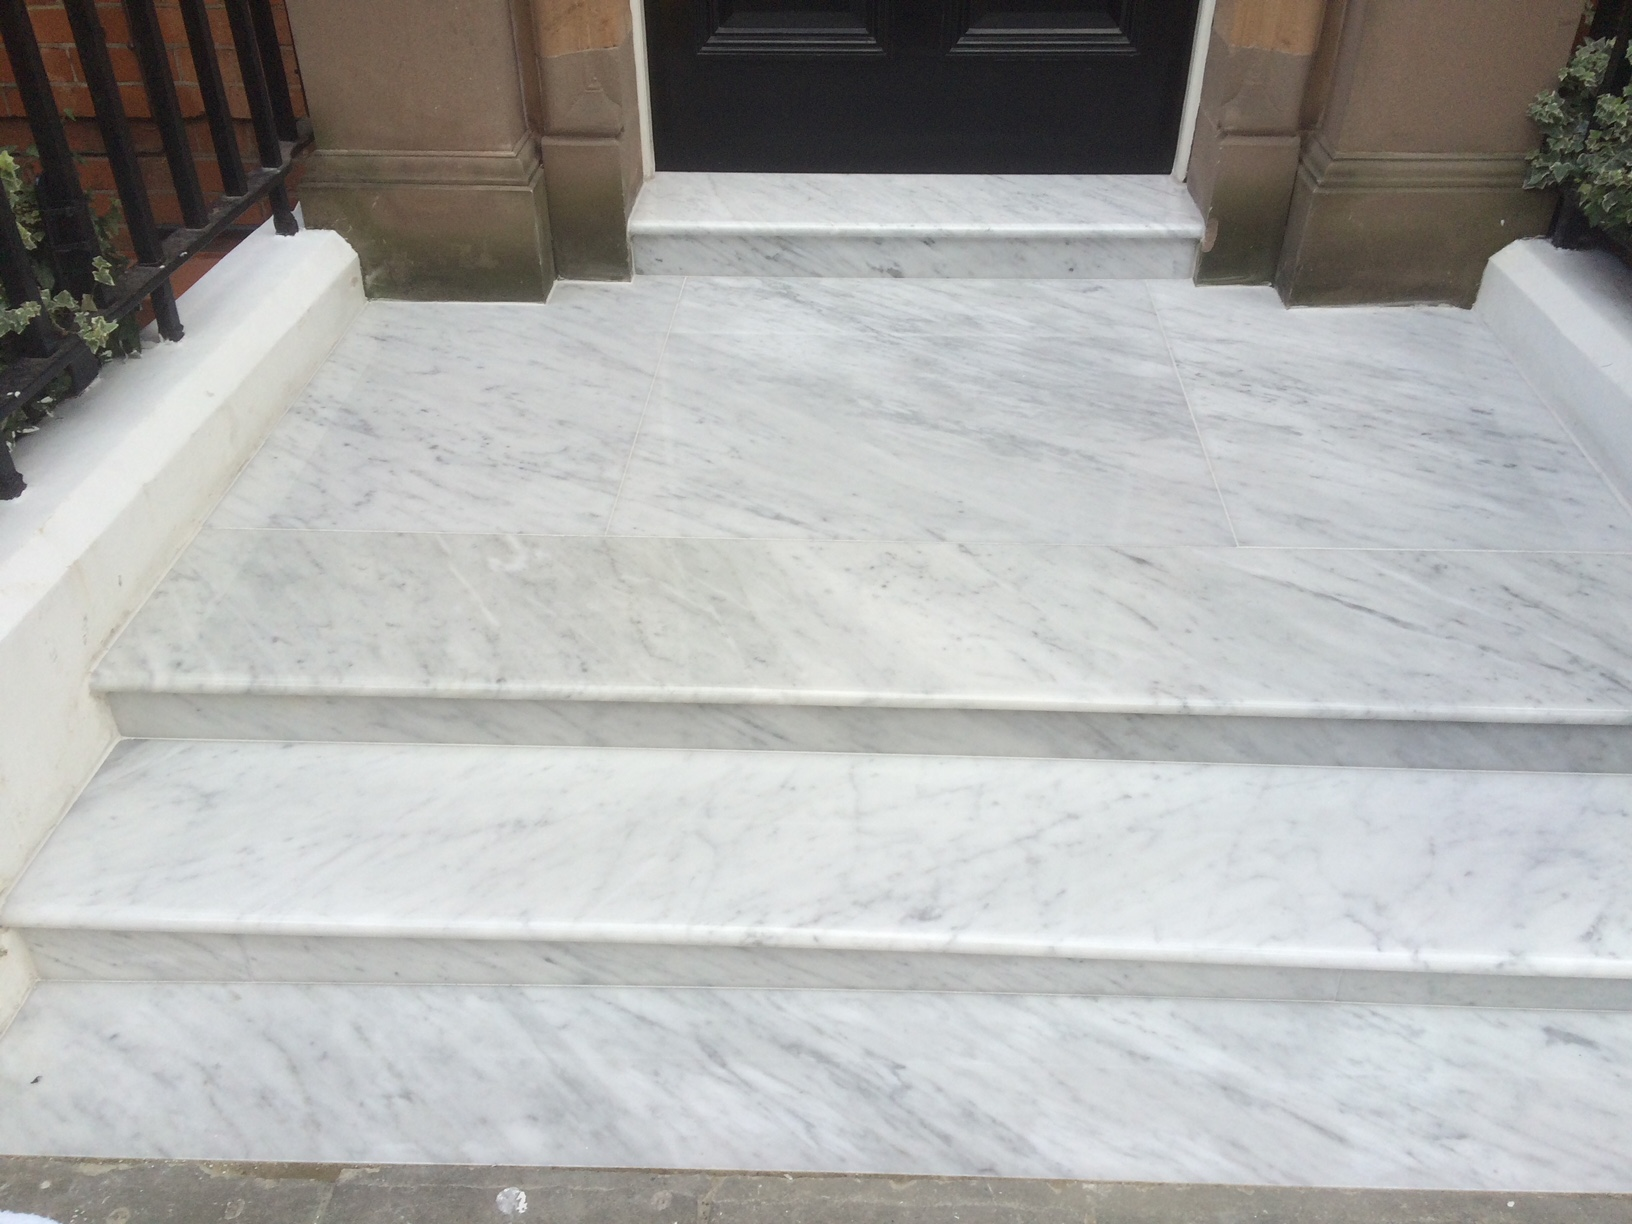 Marble steps after repair and restoration